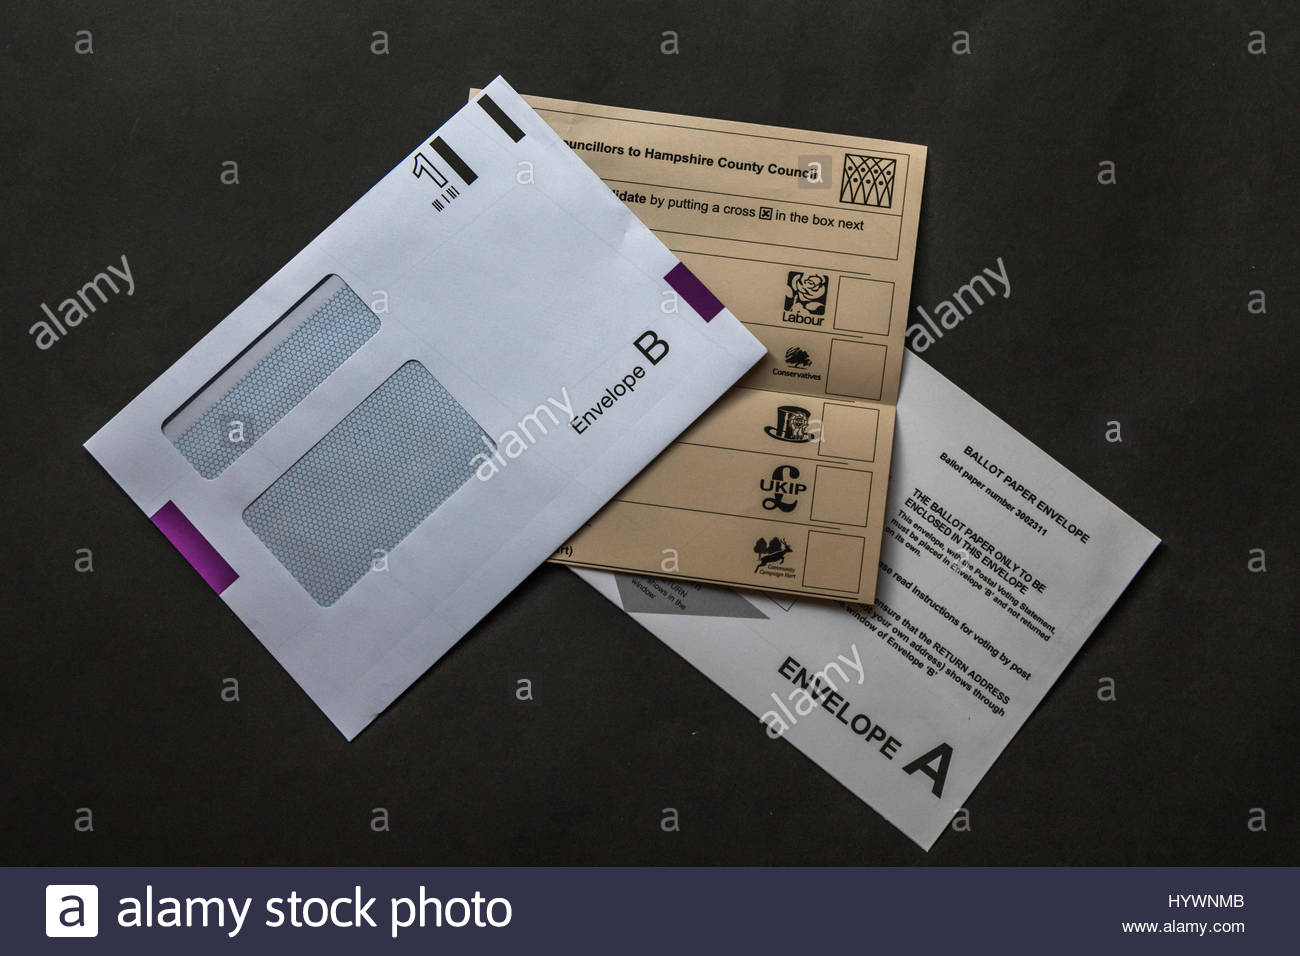 Postal voting Ballot Papers for the County Council elections on May 4th 2017 - Stock Image